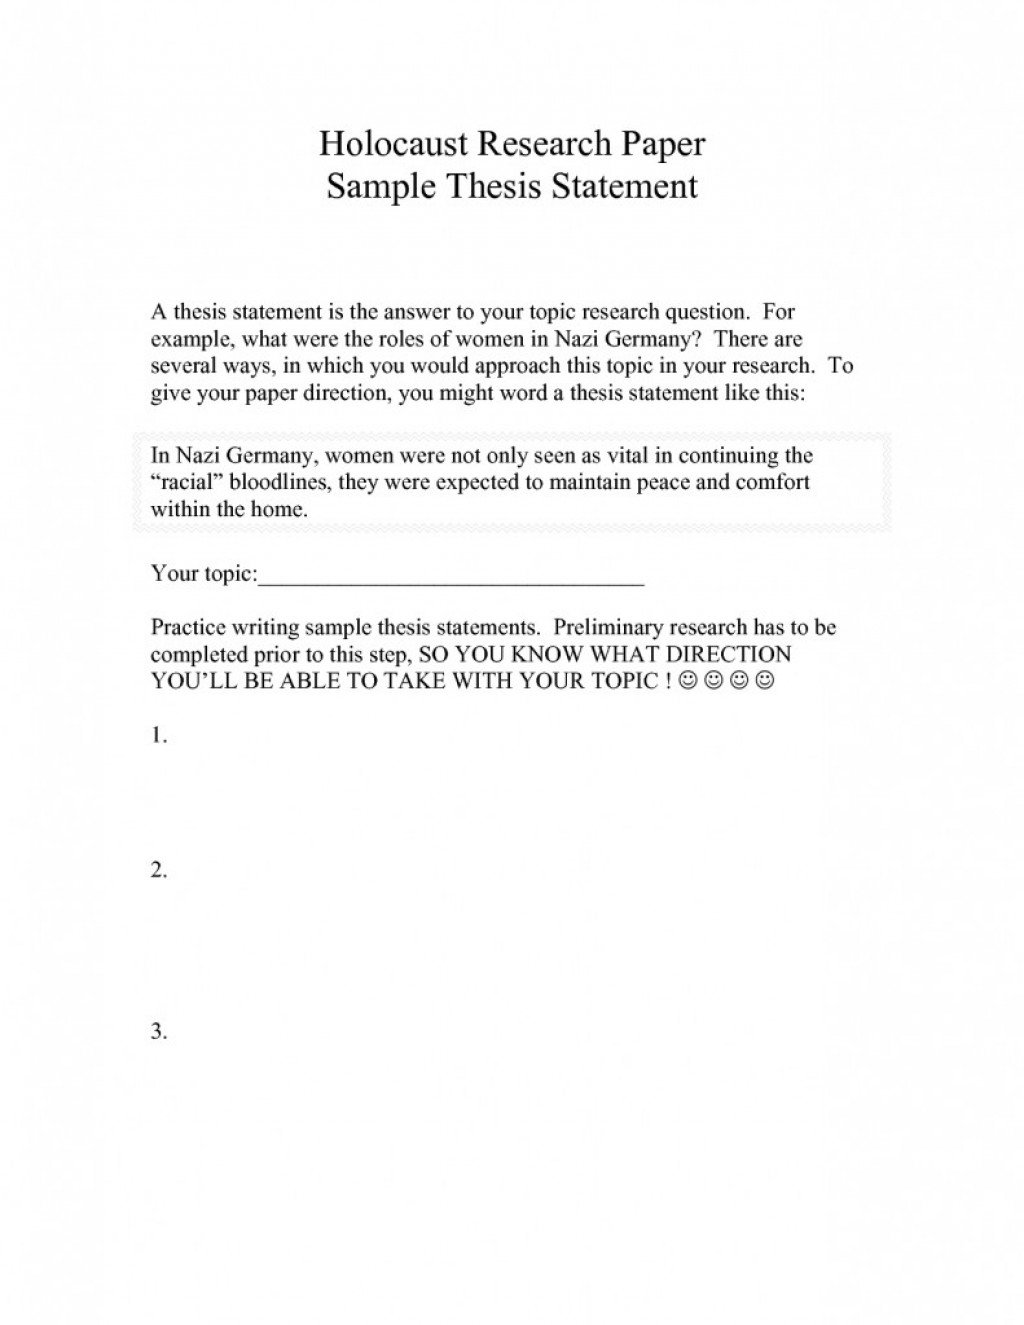 014 Research Paper Childhood Obesity Thesis Argumentative Essay Term Writing Service Business Law Questions Statement 791x1024 Incredible On Example Photo Amazing Large